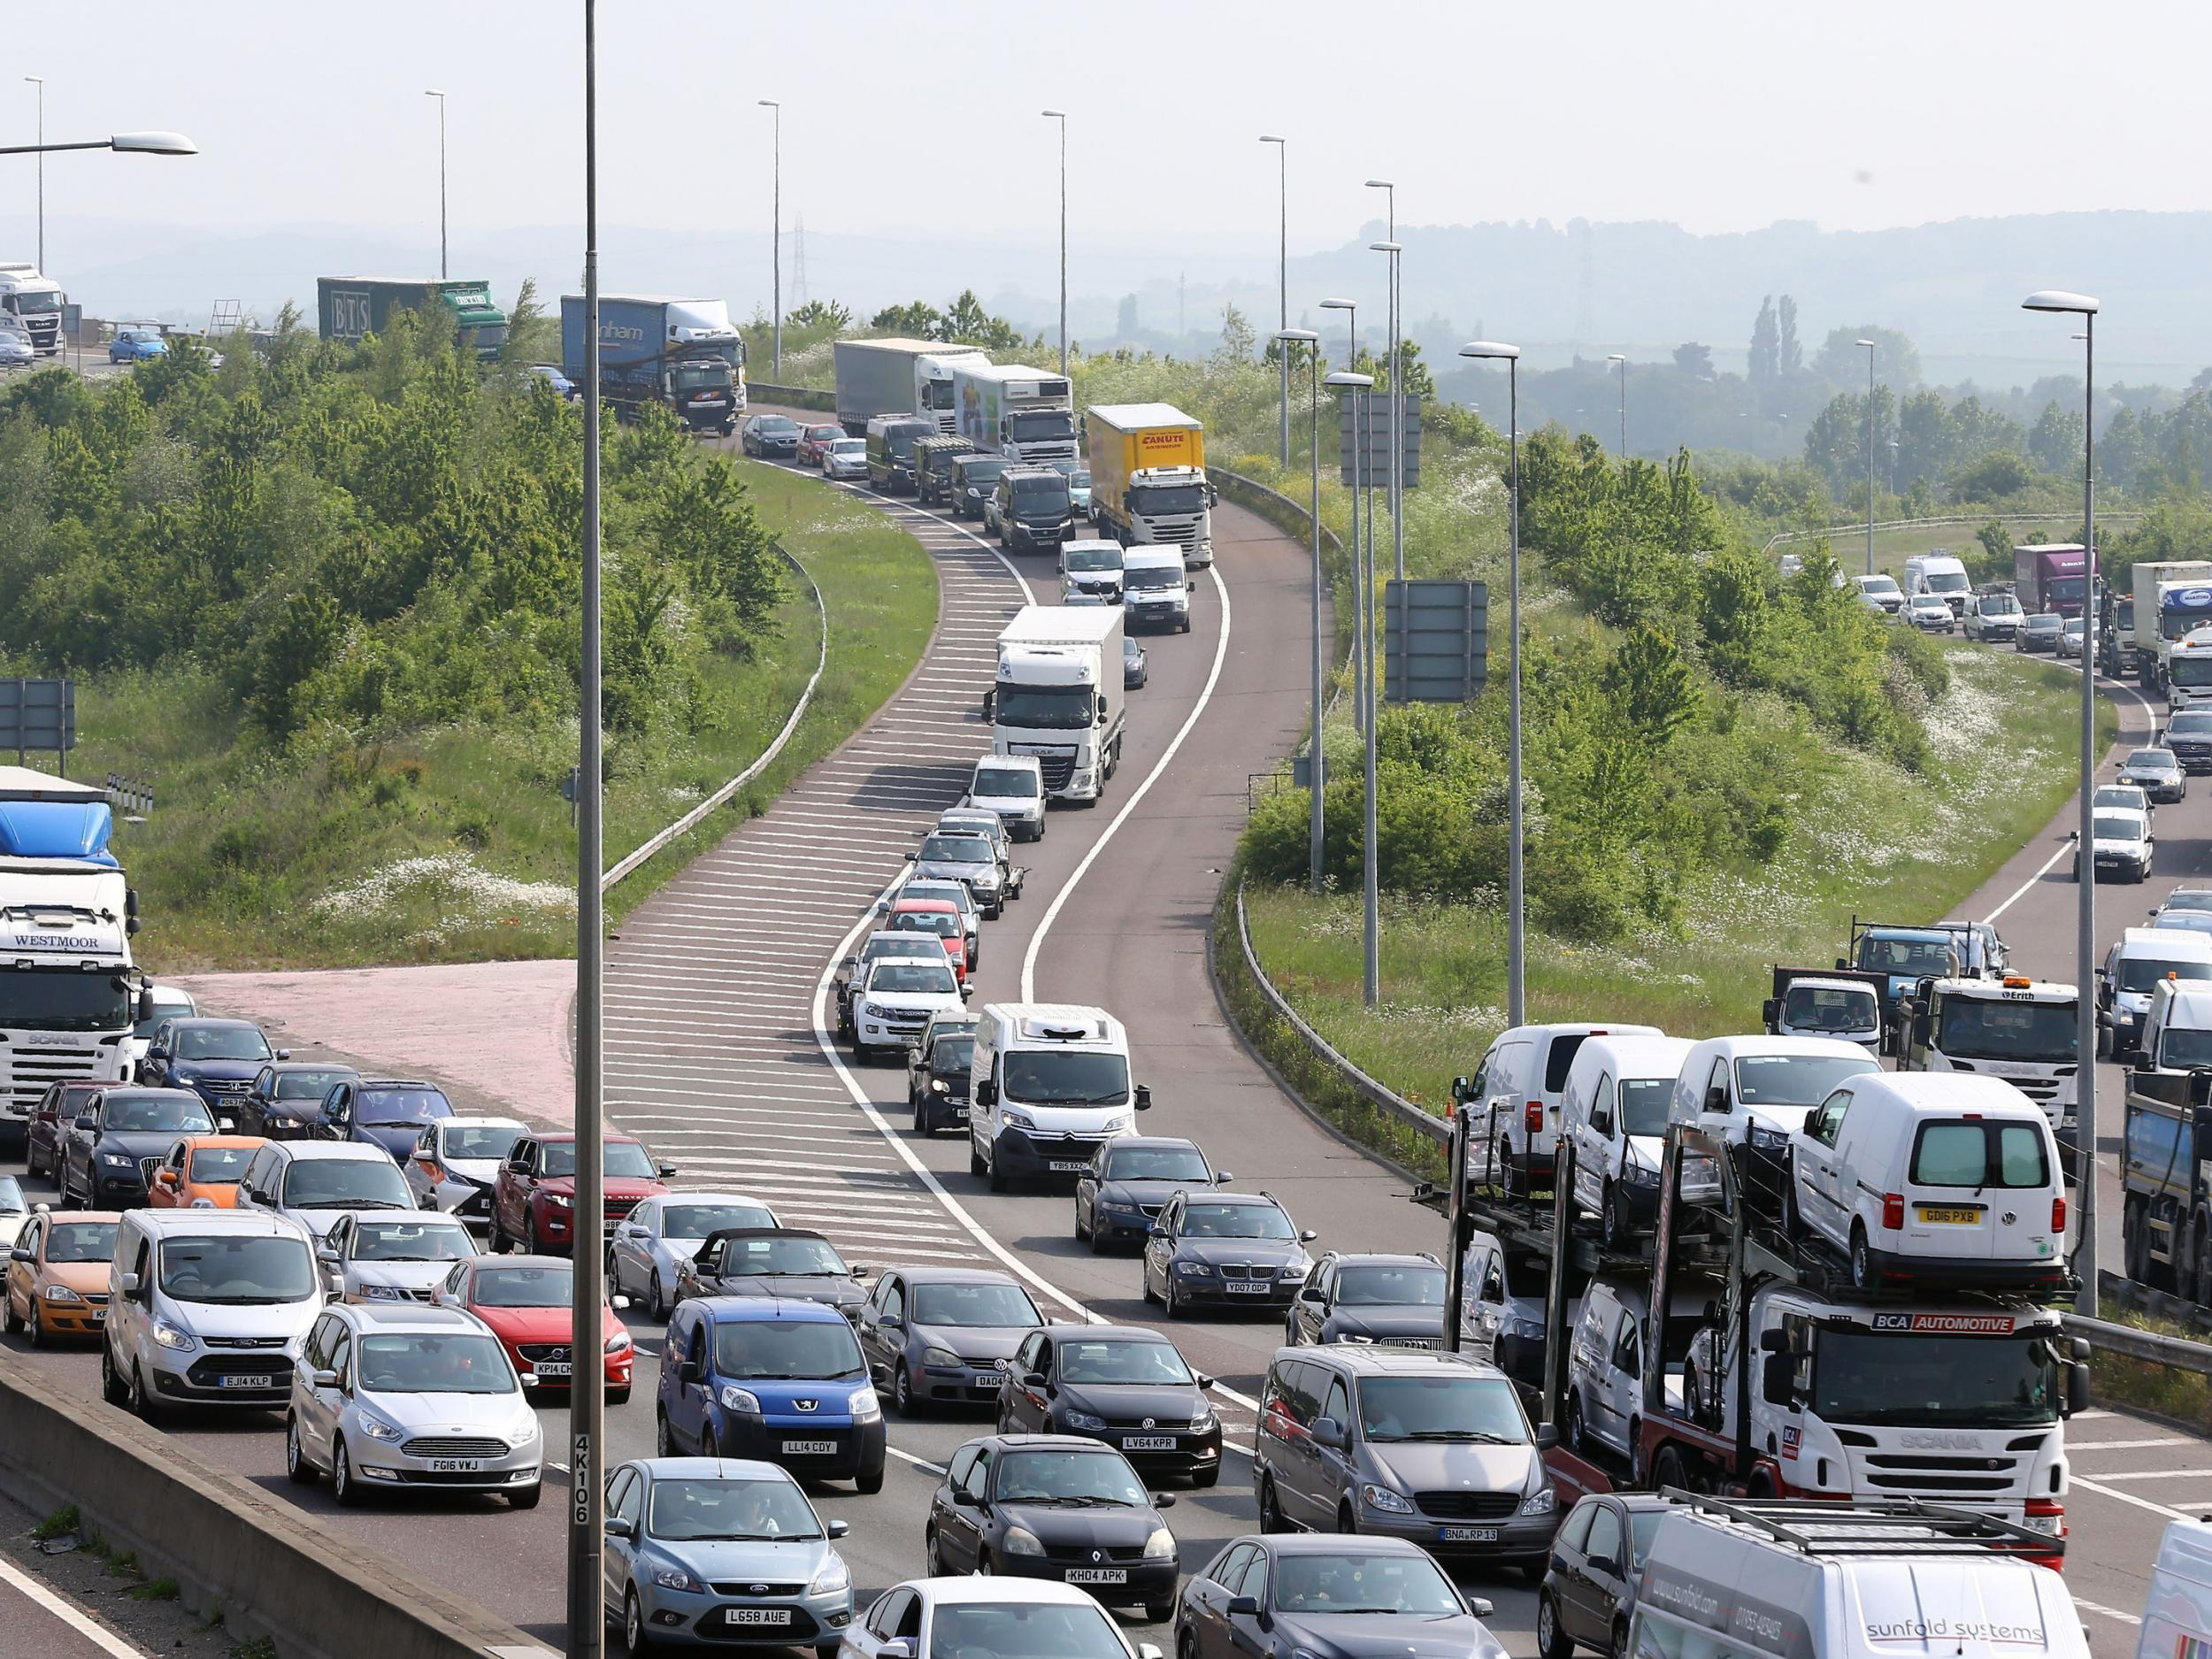 traffic jams are now a major Here's how much traffic congestion costs the world's  in traffic can cost the world's major cities tens  average of 102 hours in traffic jams during.